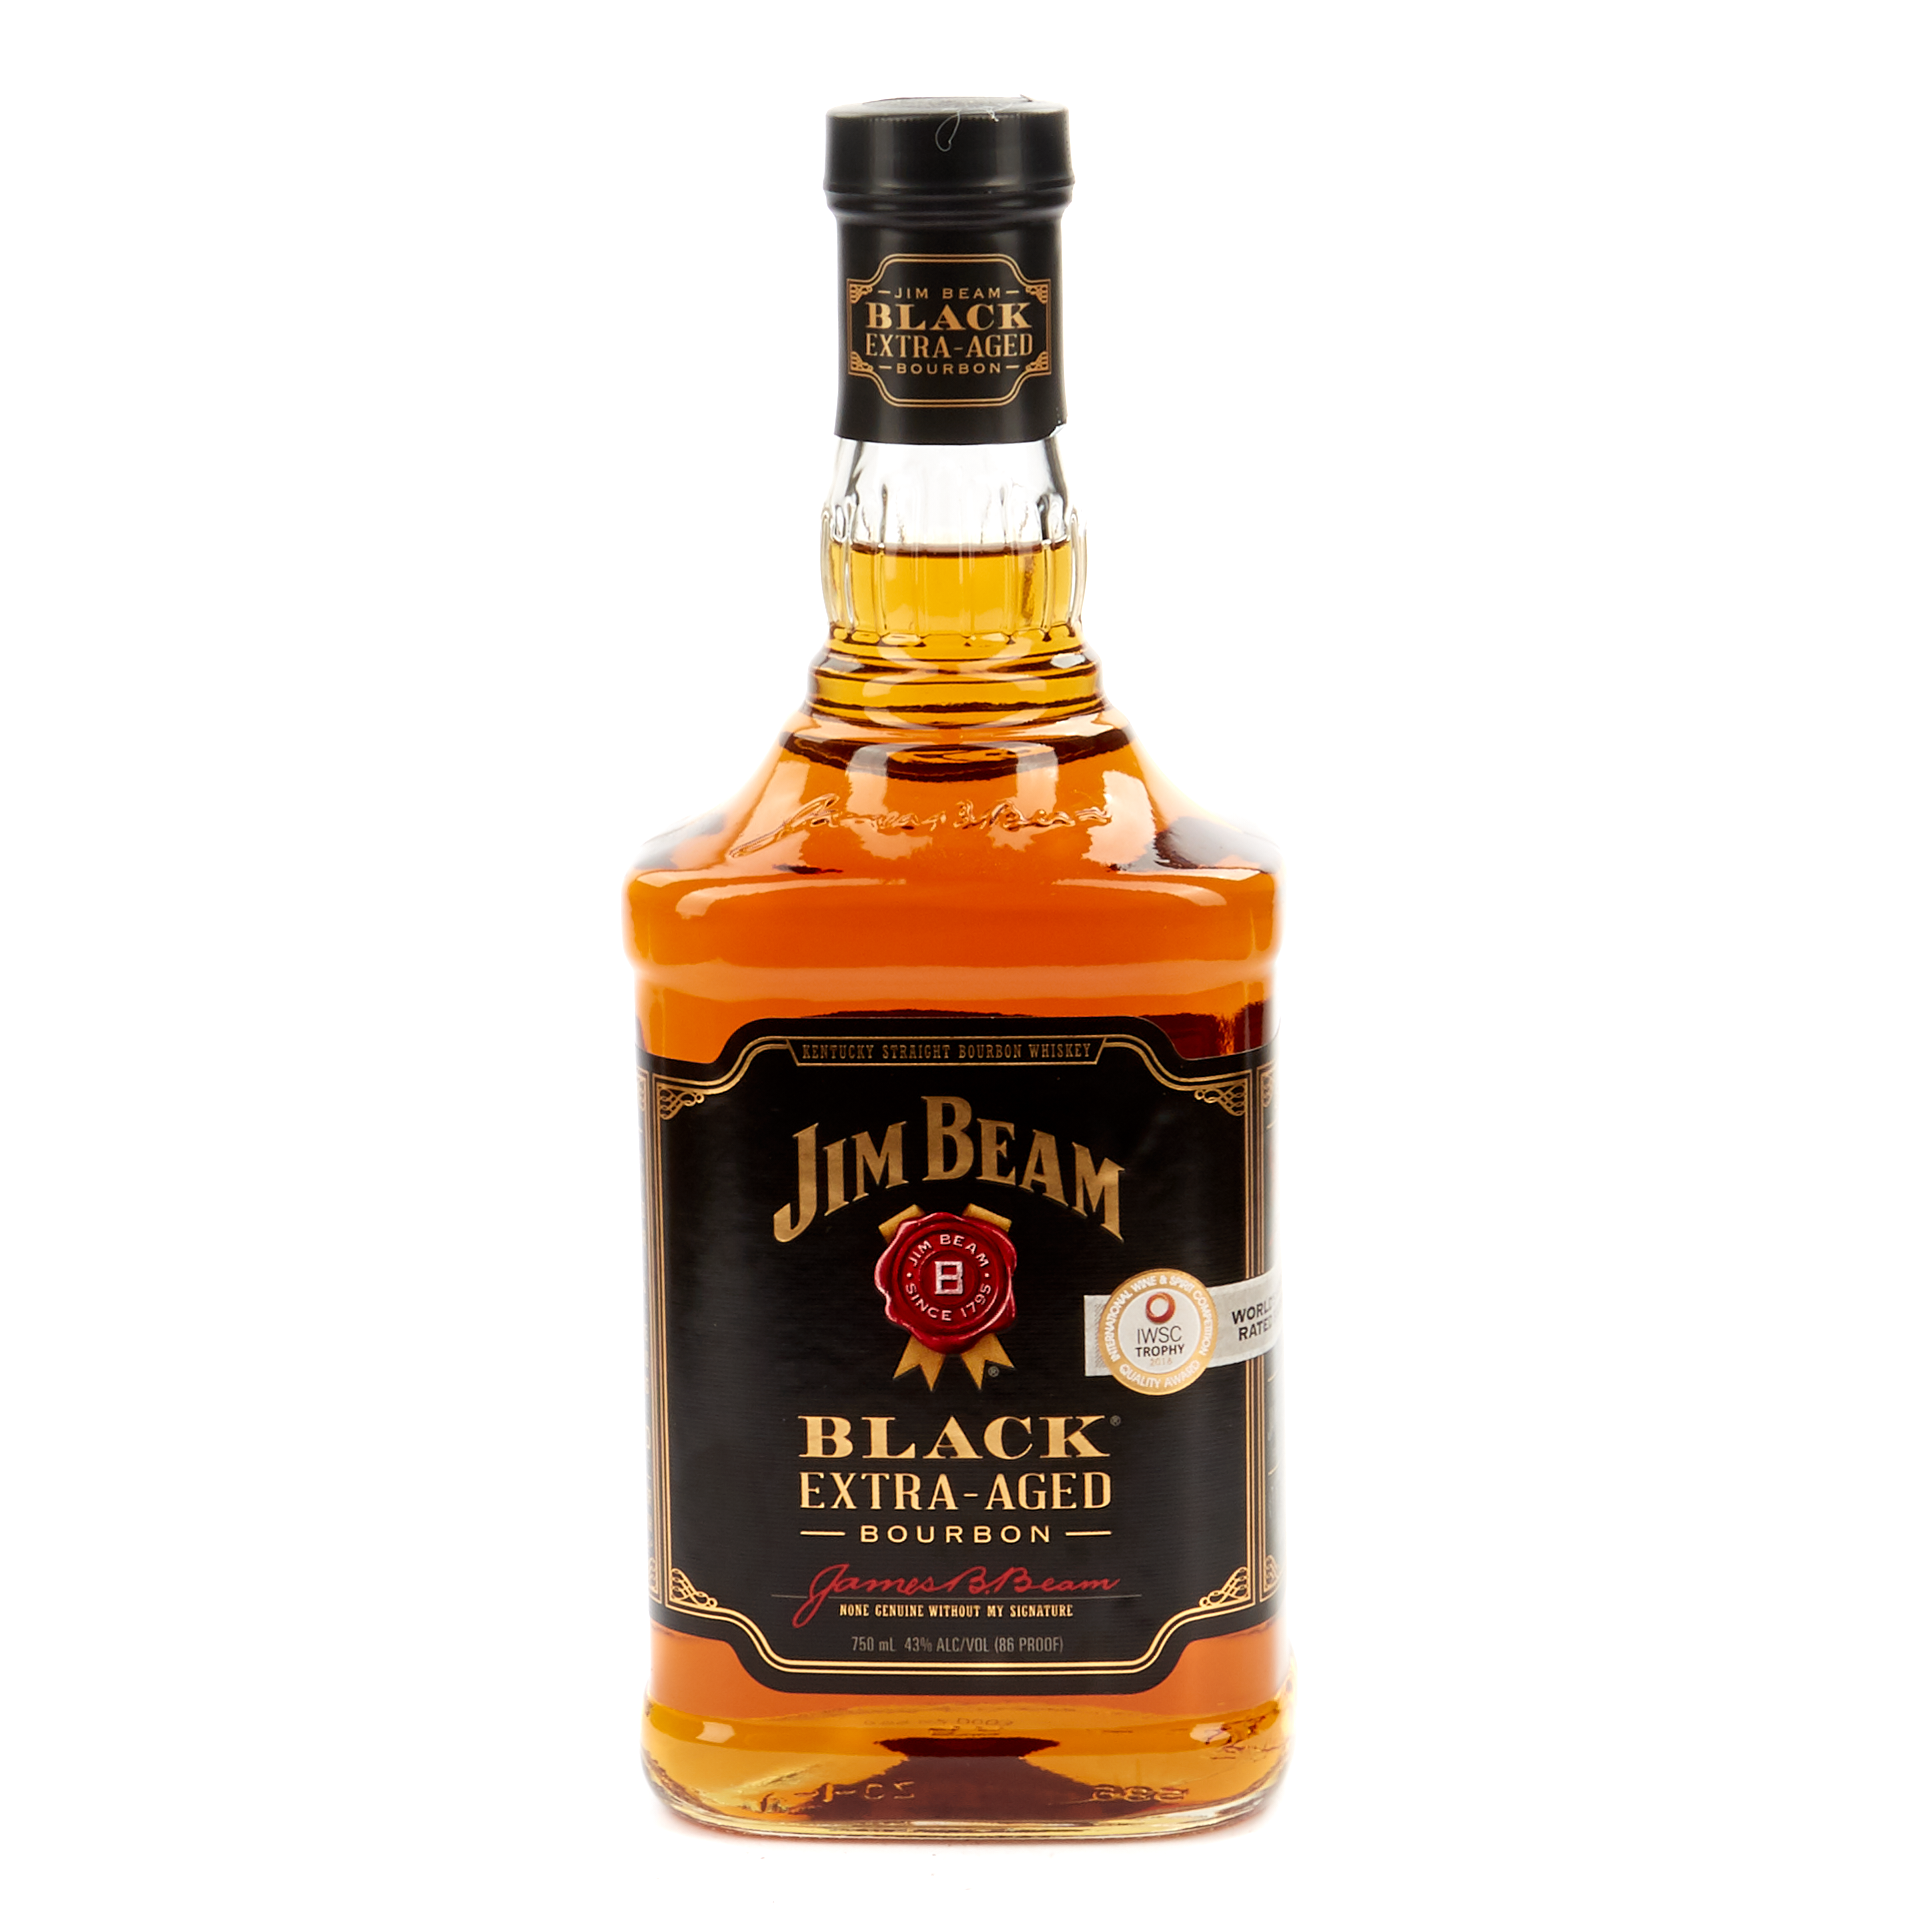 JIM BEAM BLACK EXTRA - AGED 750ML